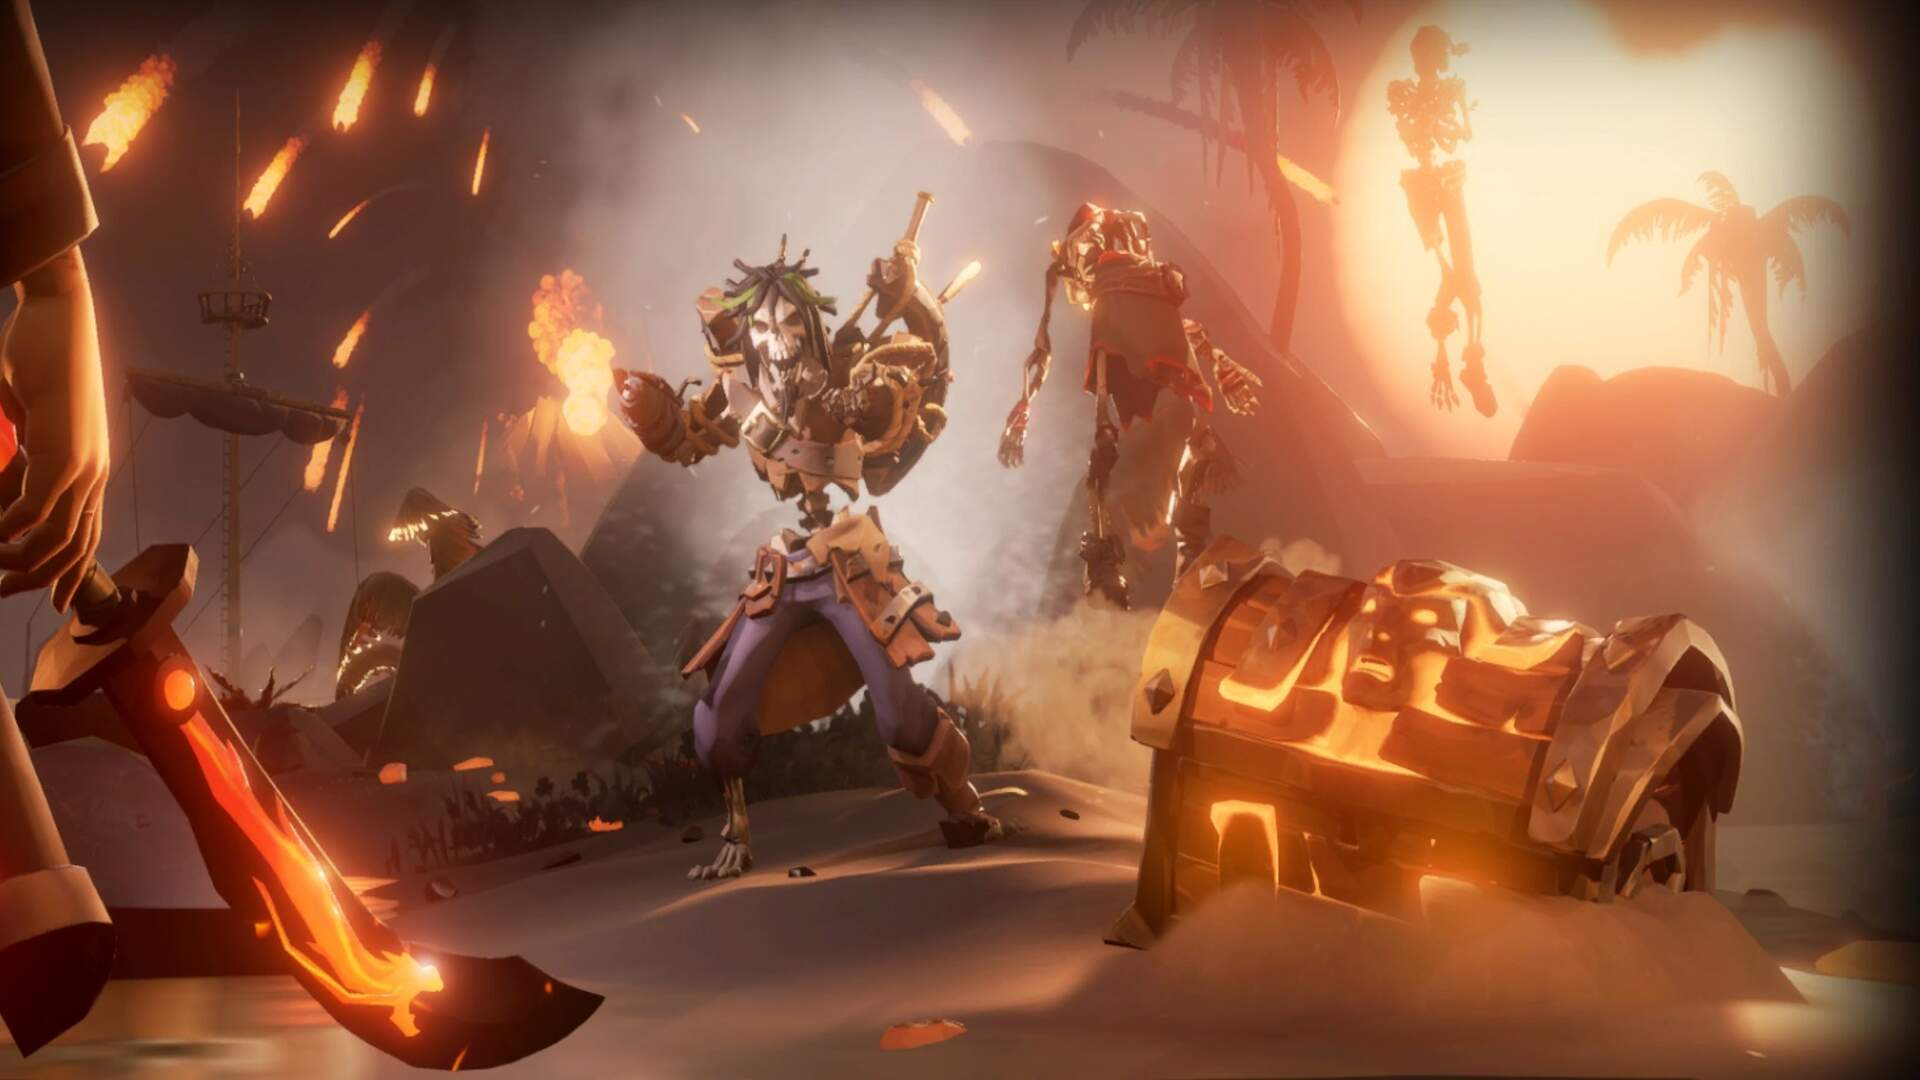 Sea of Thieves: How to Find and Sell Chests of Rage and Keep Them from Exploding